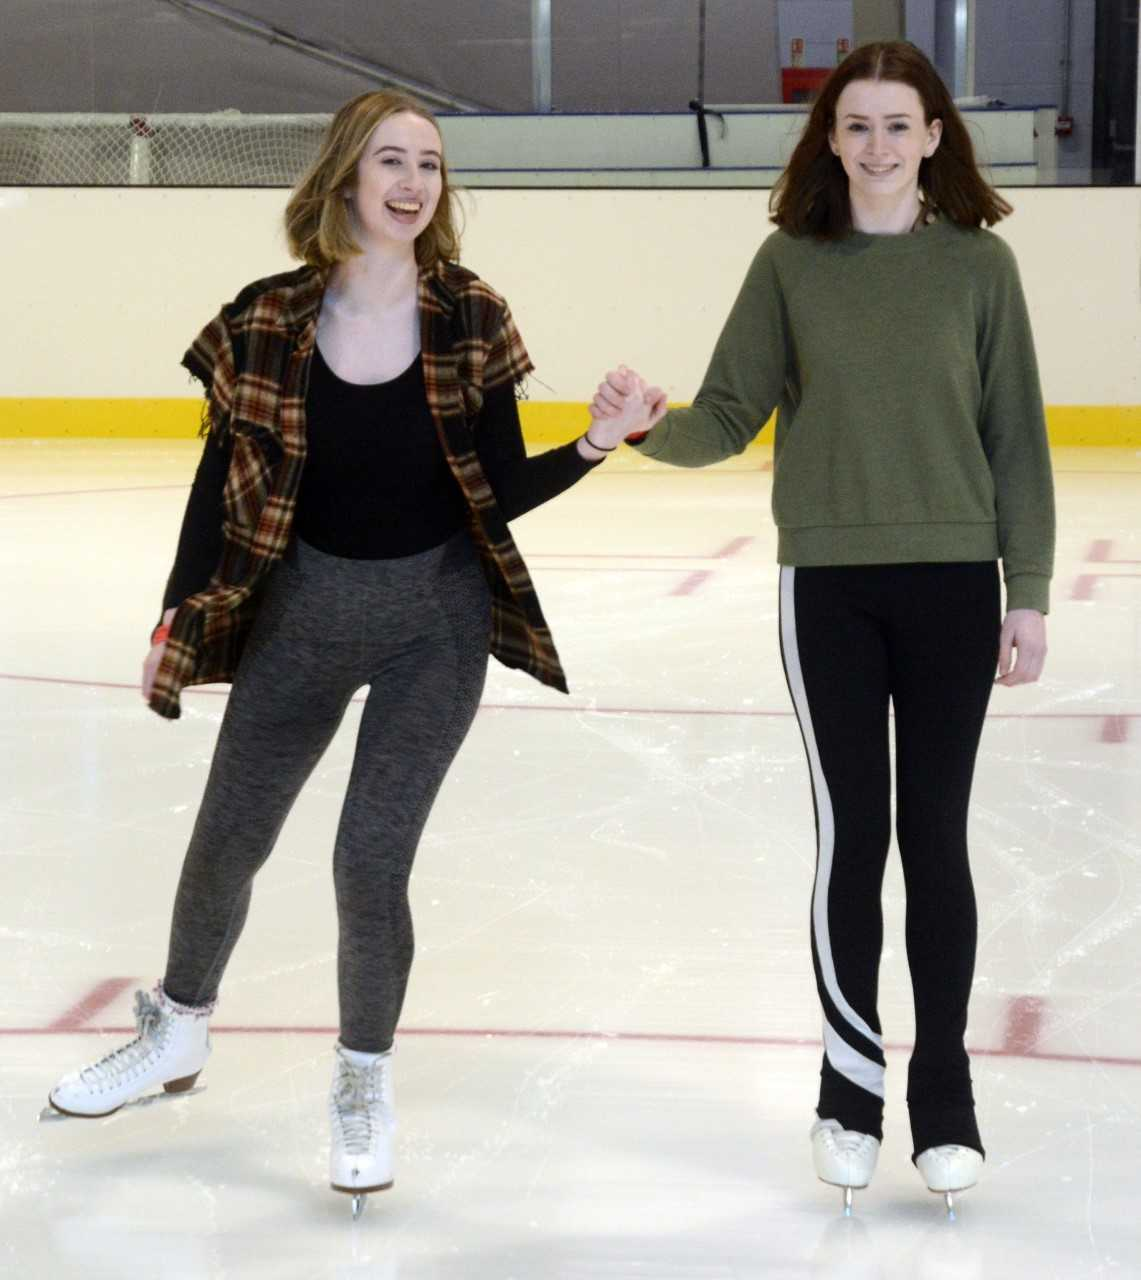 Mia Rosten, 17, and Jess Irvin, 17, both of Maidenhead - among the first people on the new ice arena